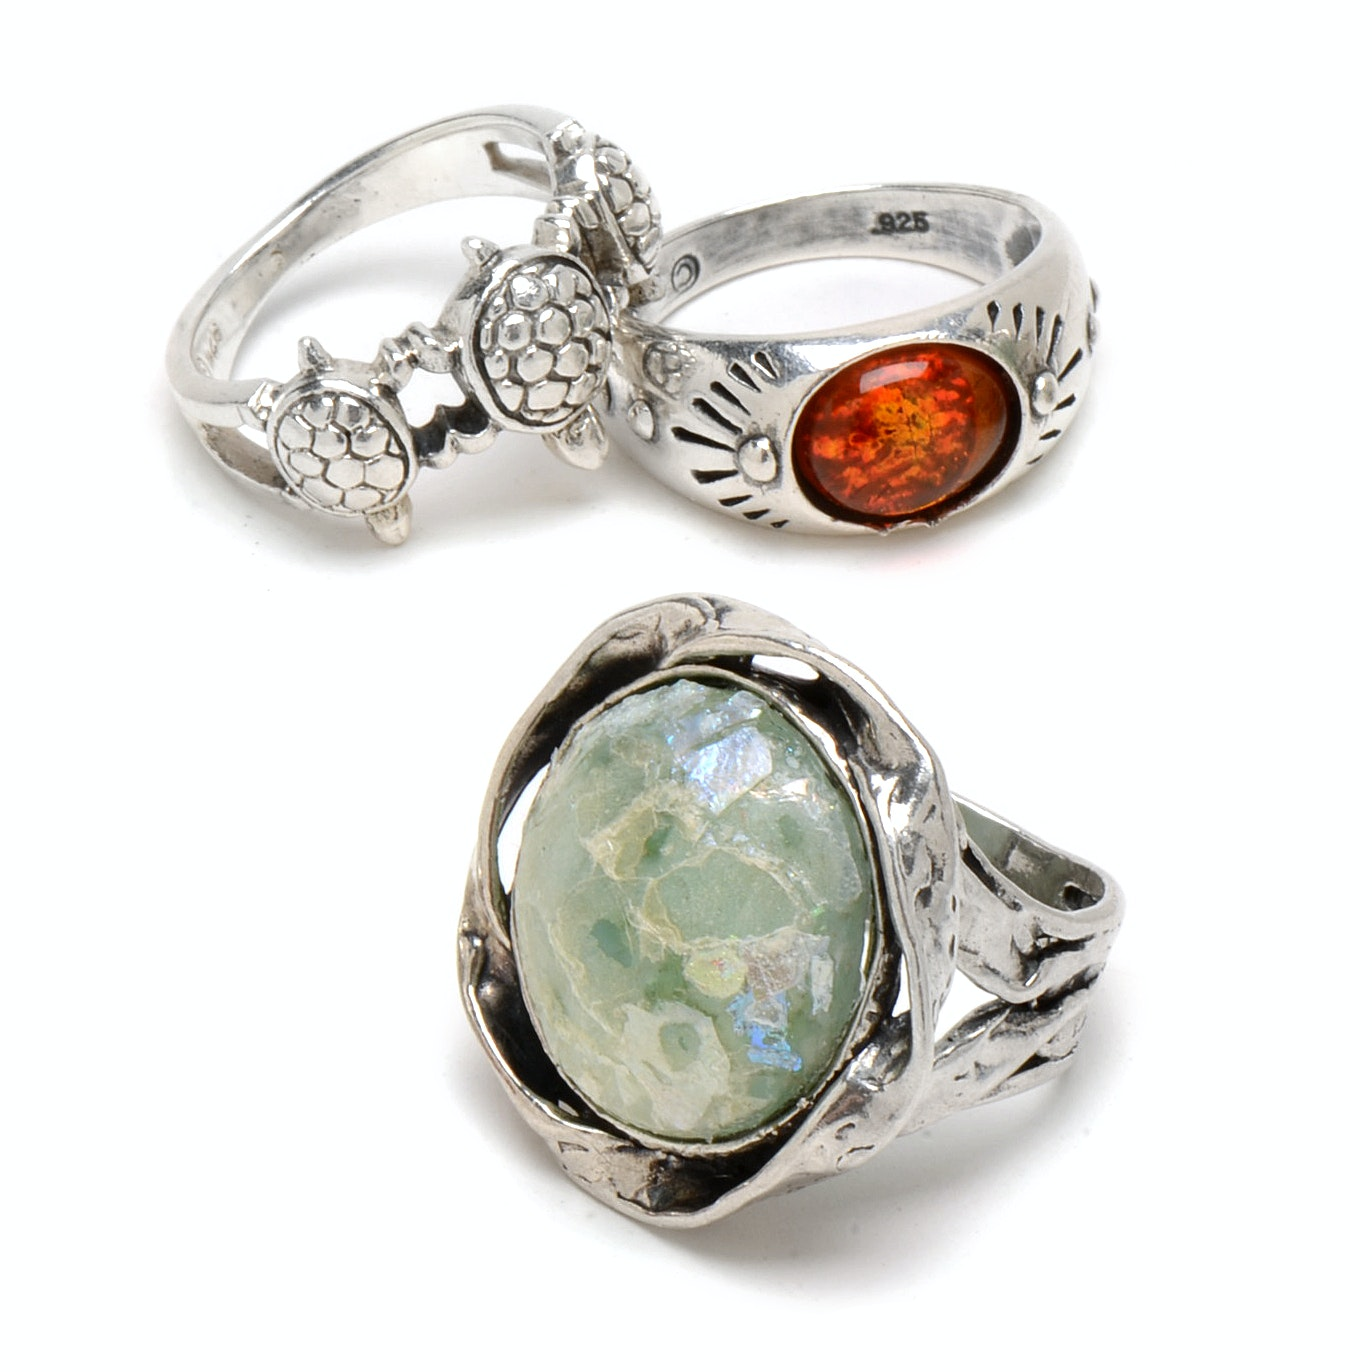 Assortment of Sterling Silver Fashion Rings